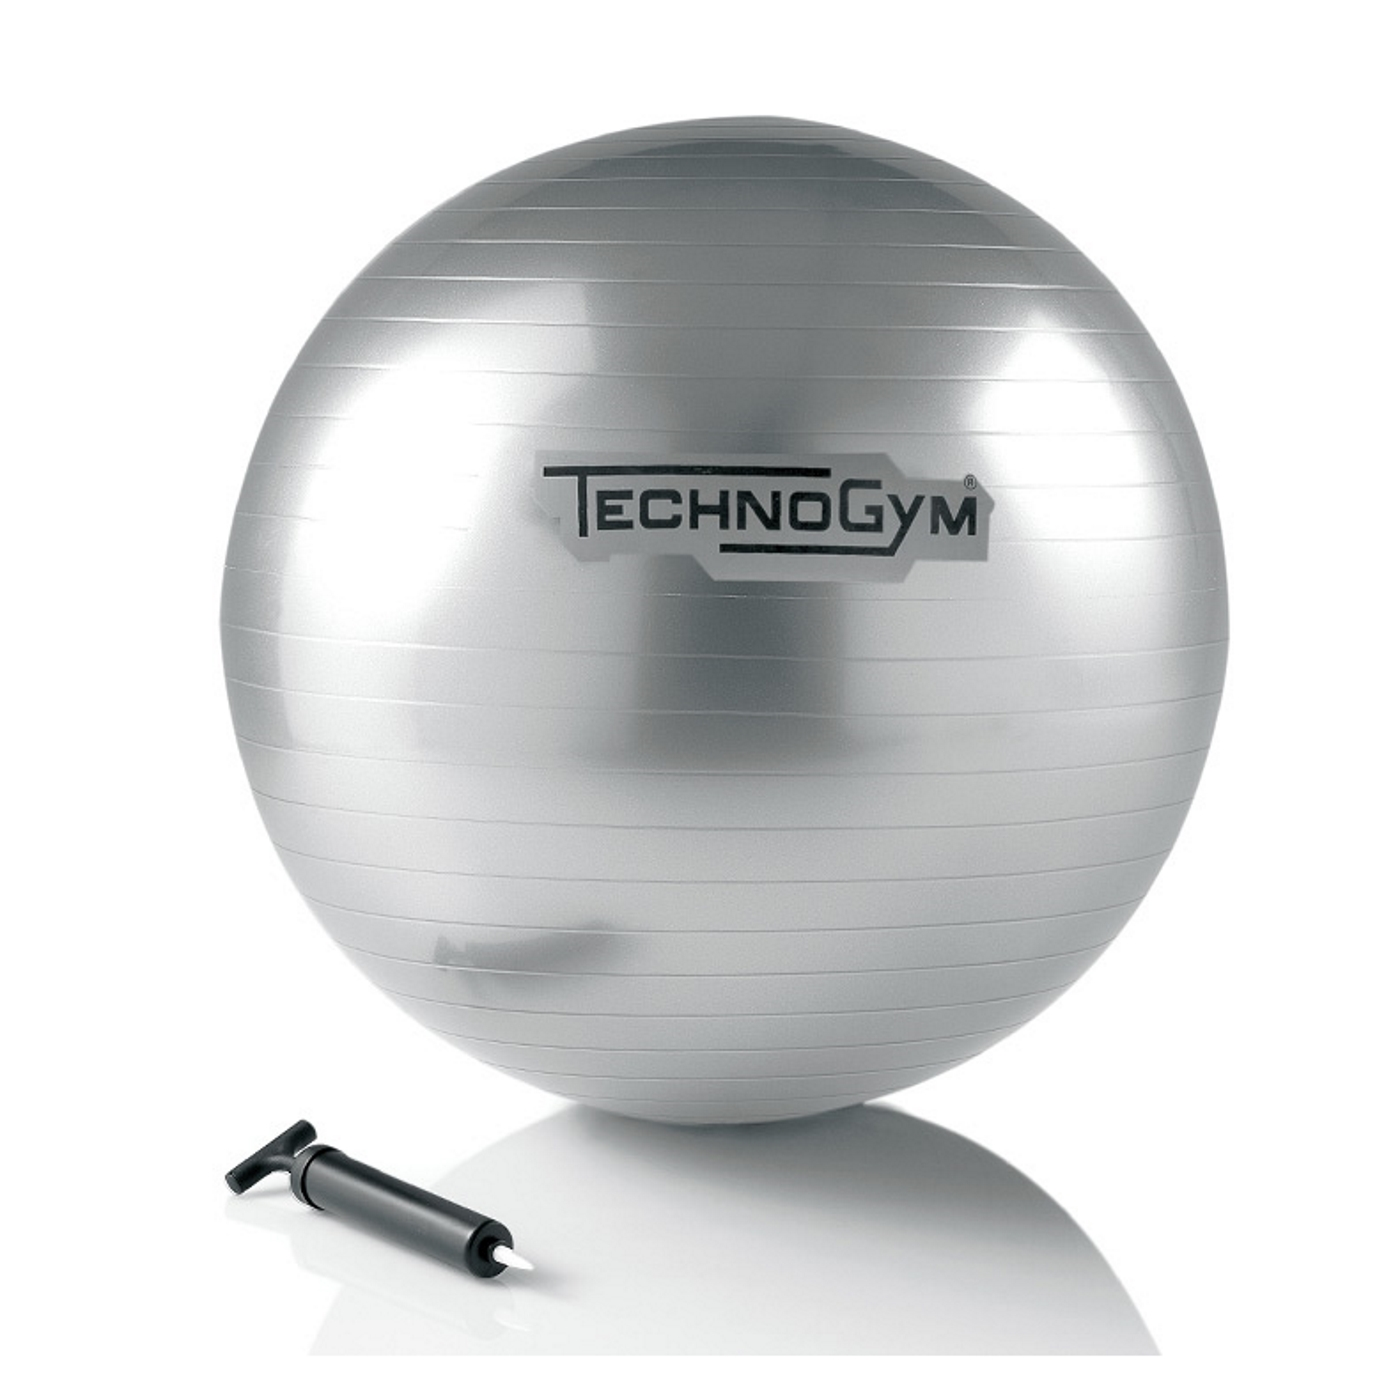 Technogym Wellness Ball (55cm)